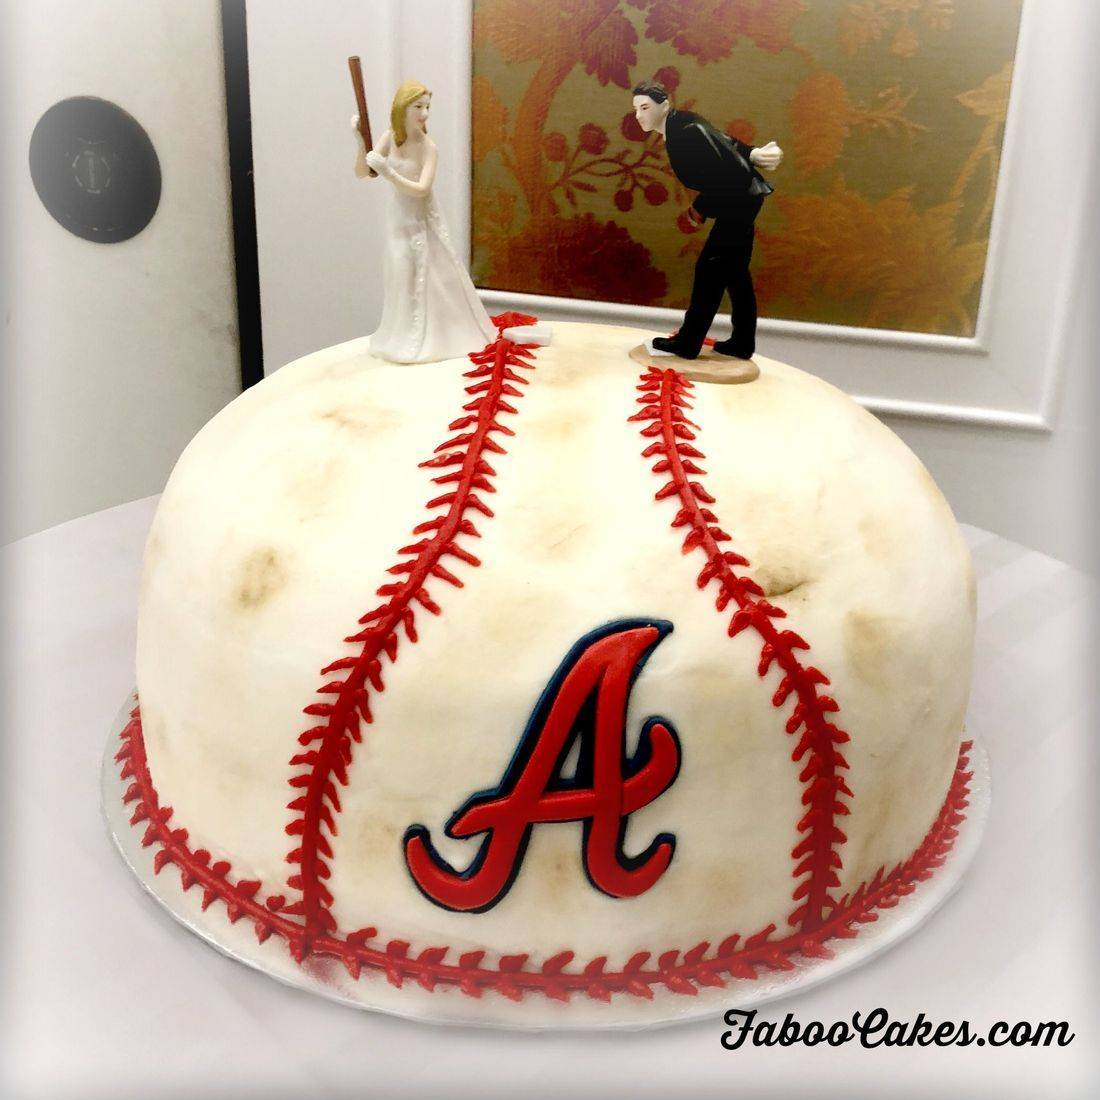 Atlanta Braves Baseball Cake 3d carved cake